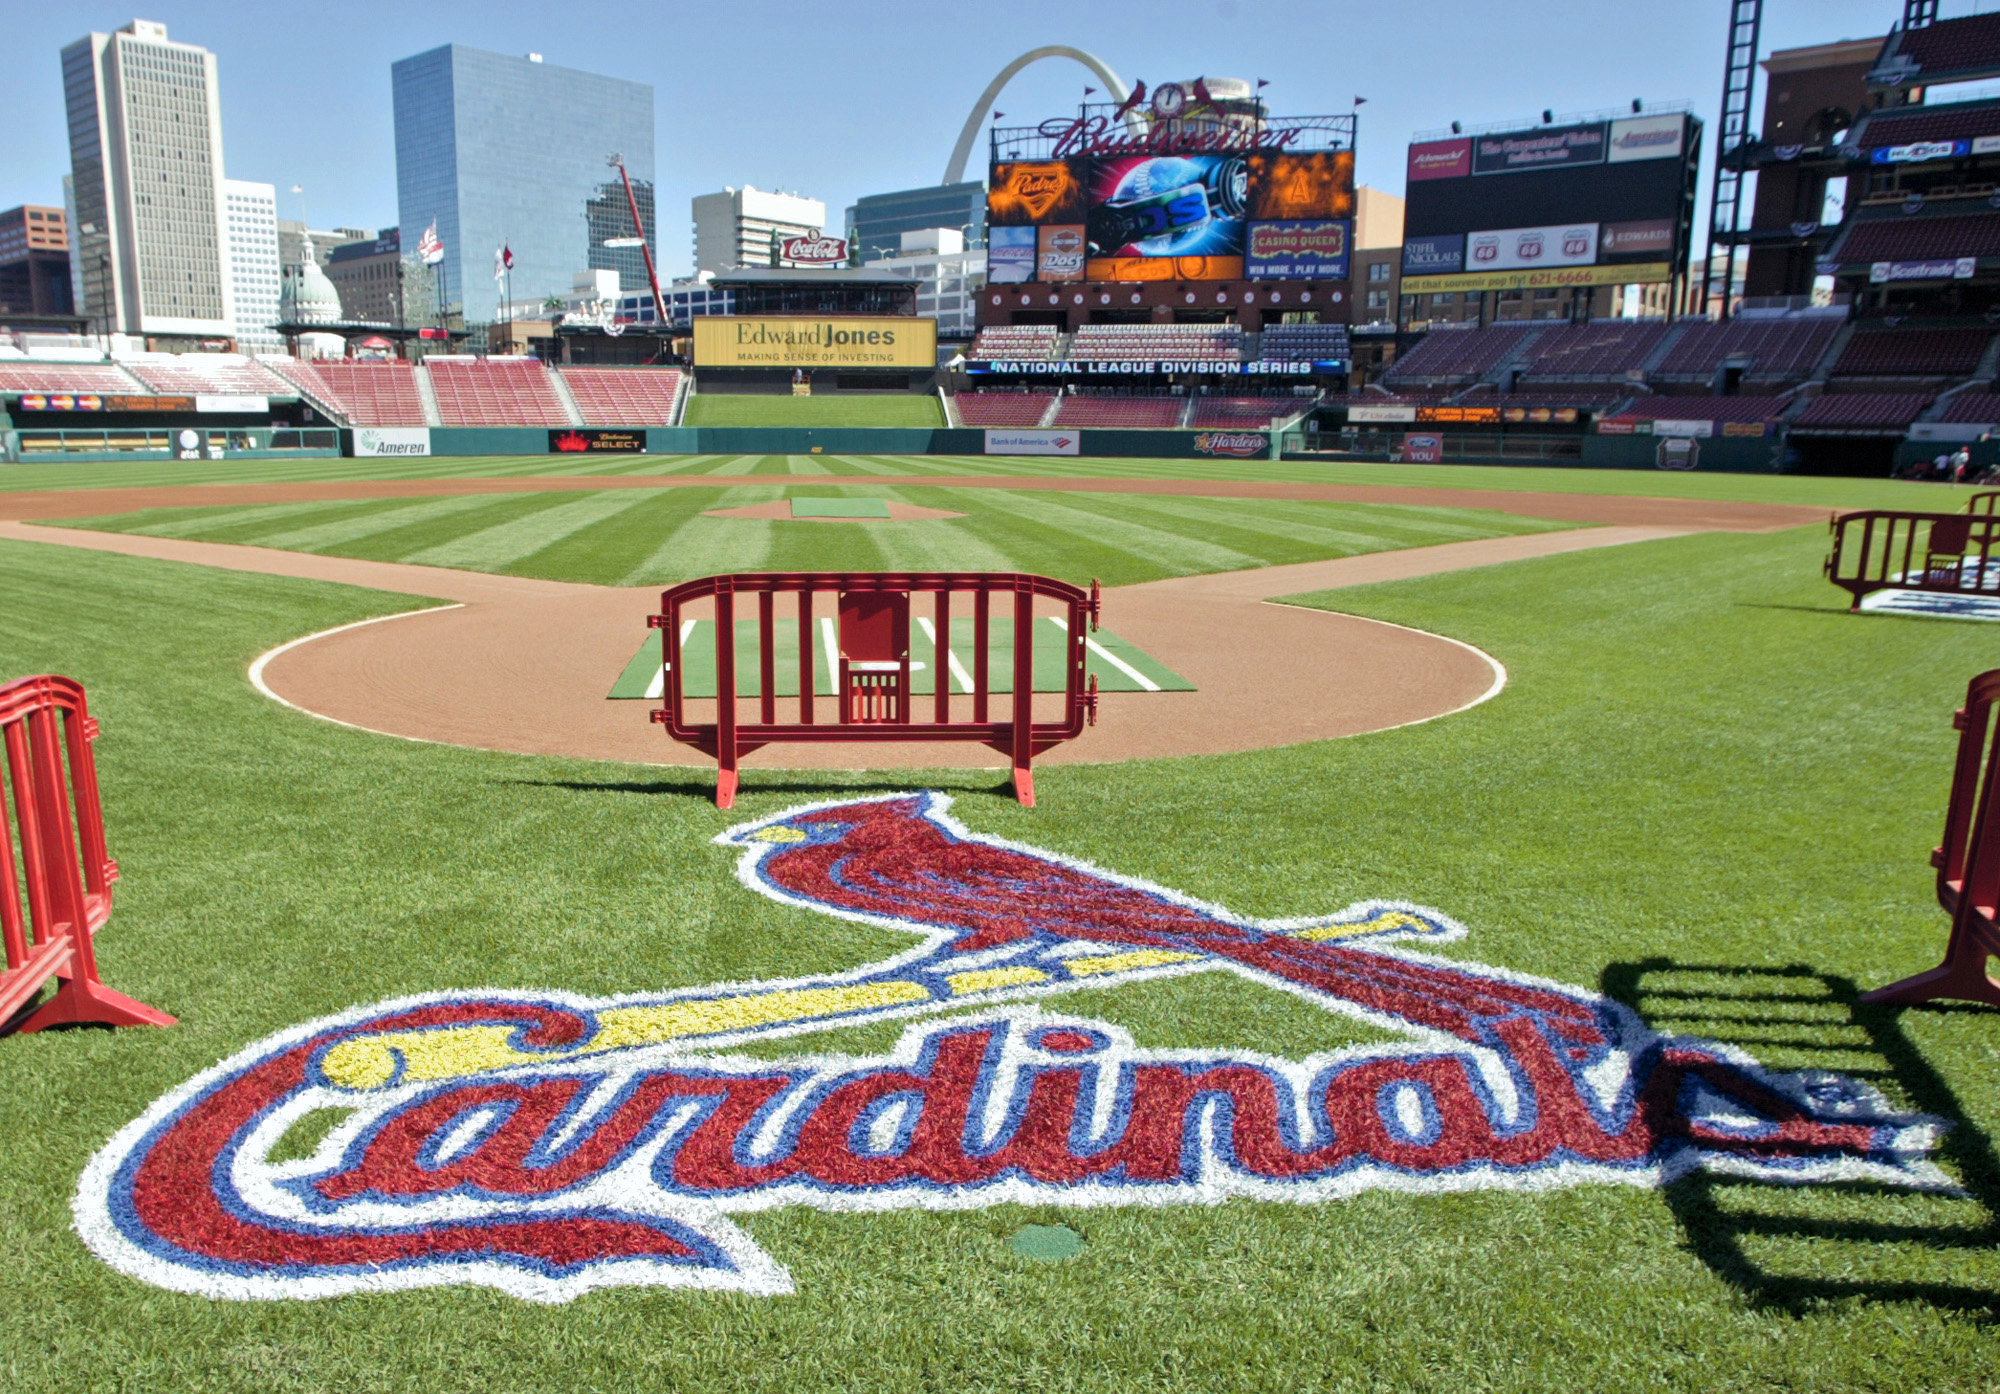 FILE - In this Oct. 6, 2006 file photo, a freshly painted St. Louis Cardinals logo adorns the grass behind home plate at Busch Stadium in St. Louis. The St. Louis Cardinals have been the toast of their Midwestern town for generations, a source of civic pr